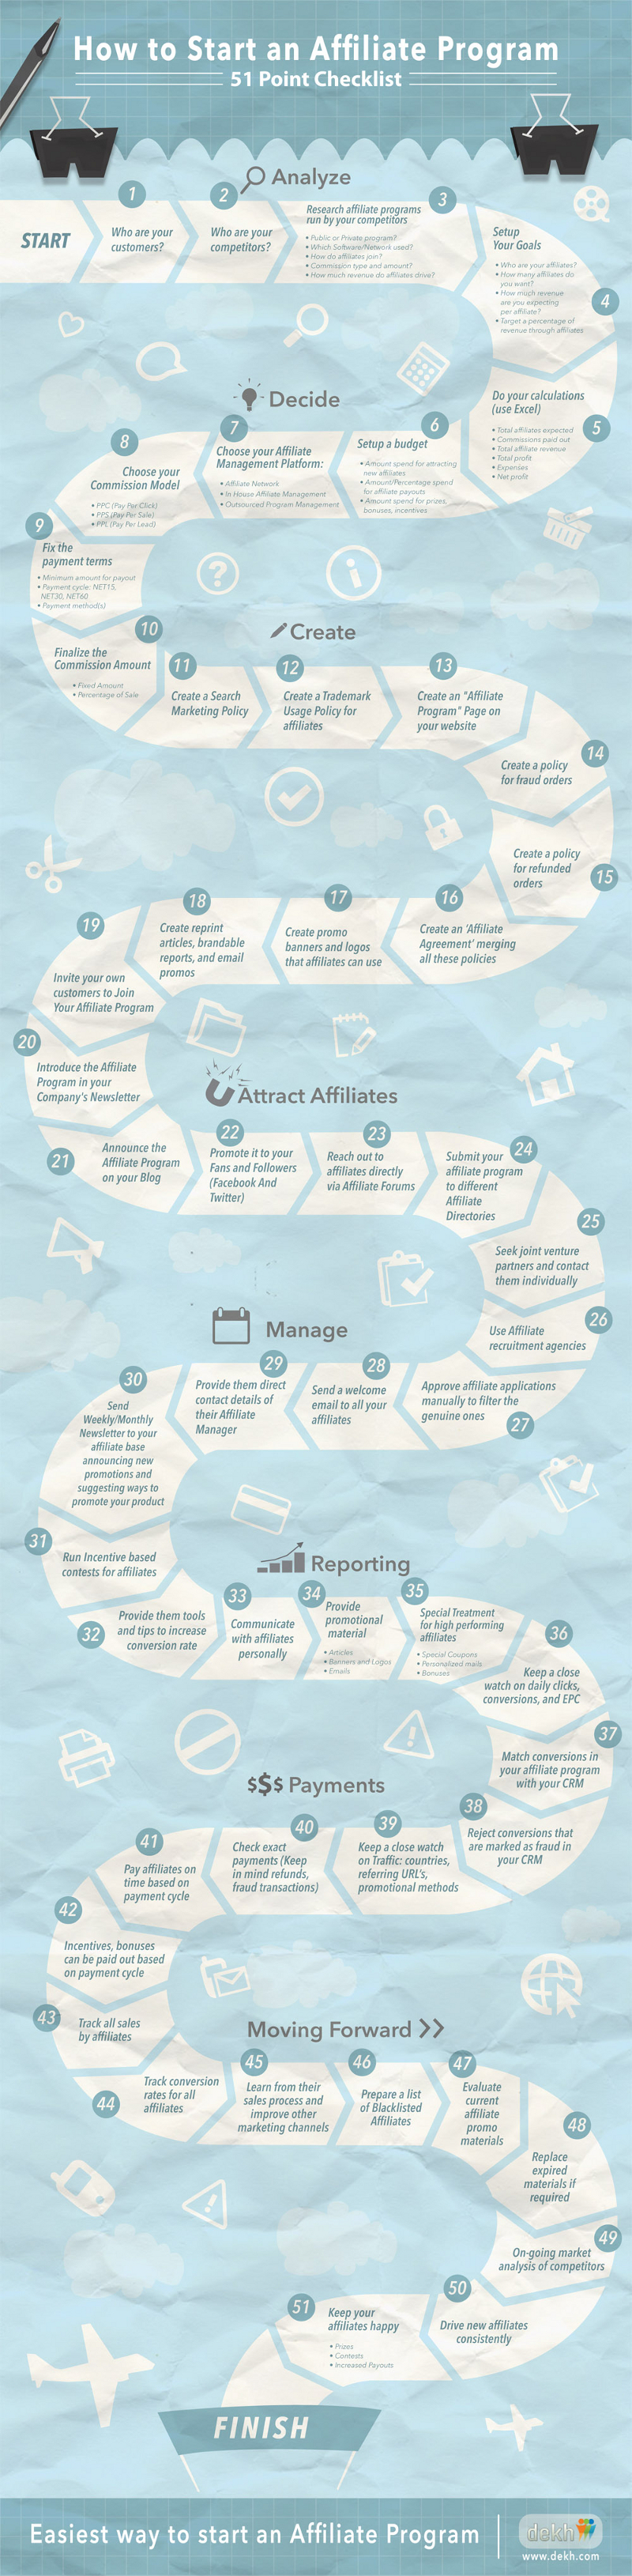 51 Tips to Starting an Affiliate Marketing Program